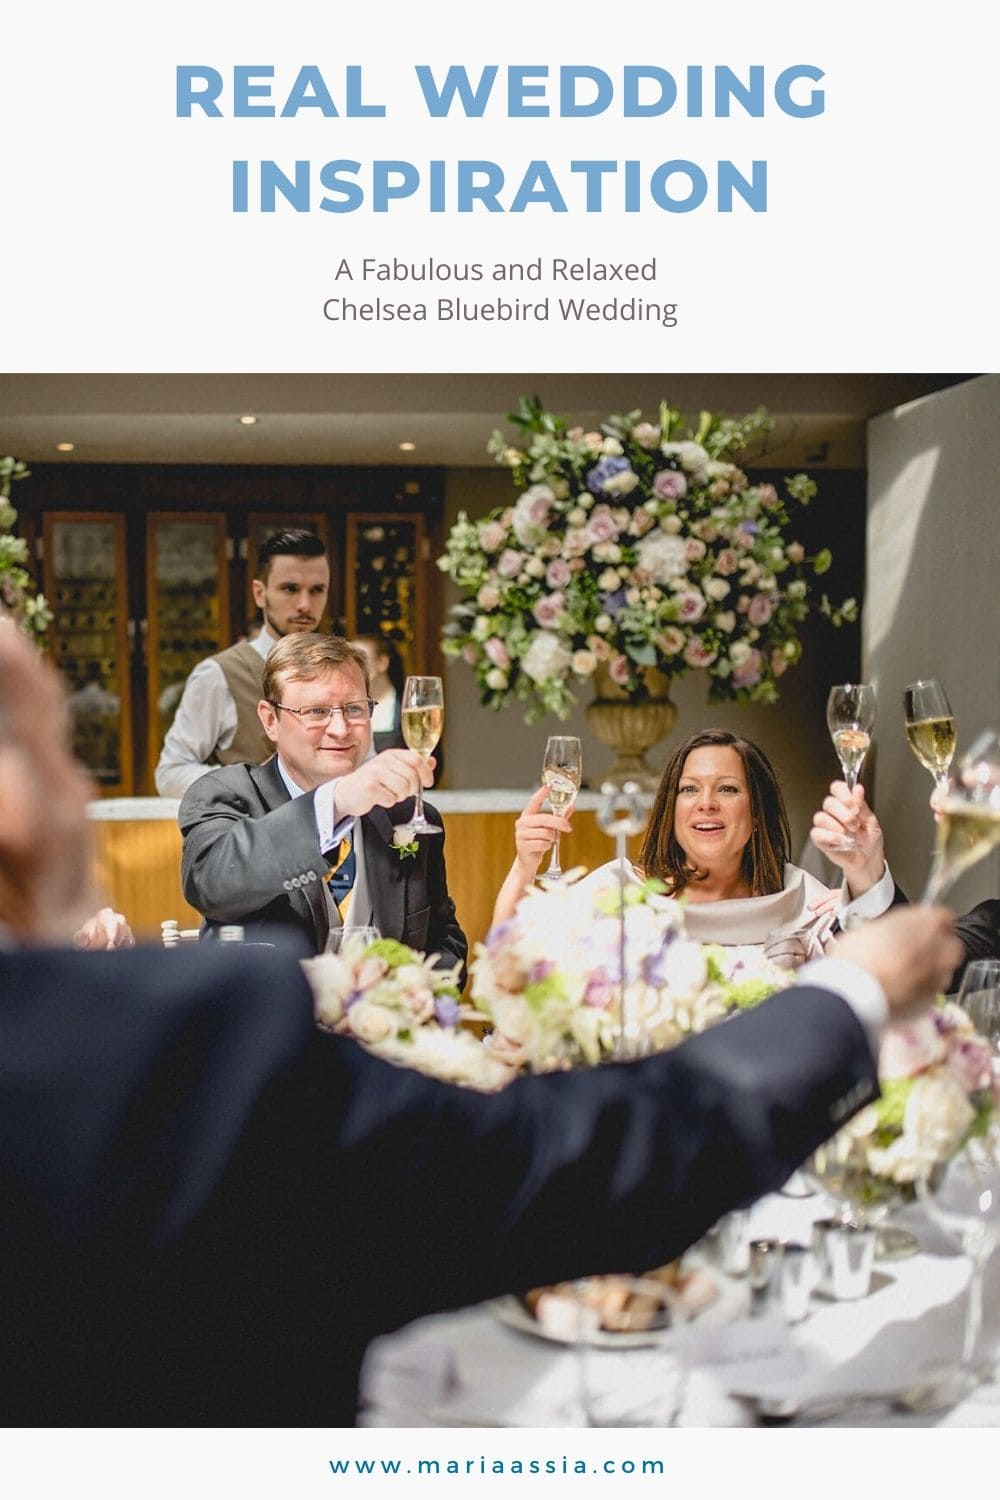 Bride and groom cheering their wedding guests at the Bluebird in Chelsea, London